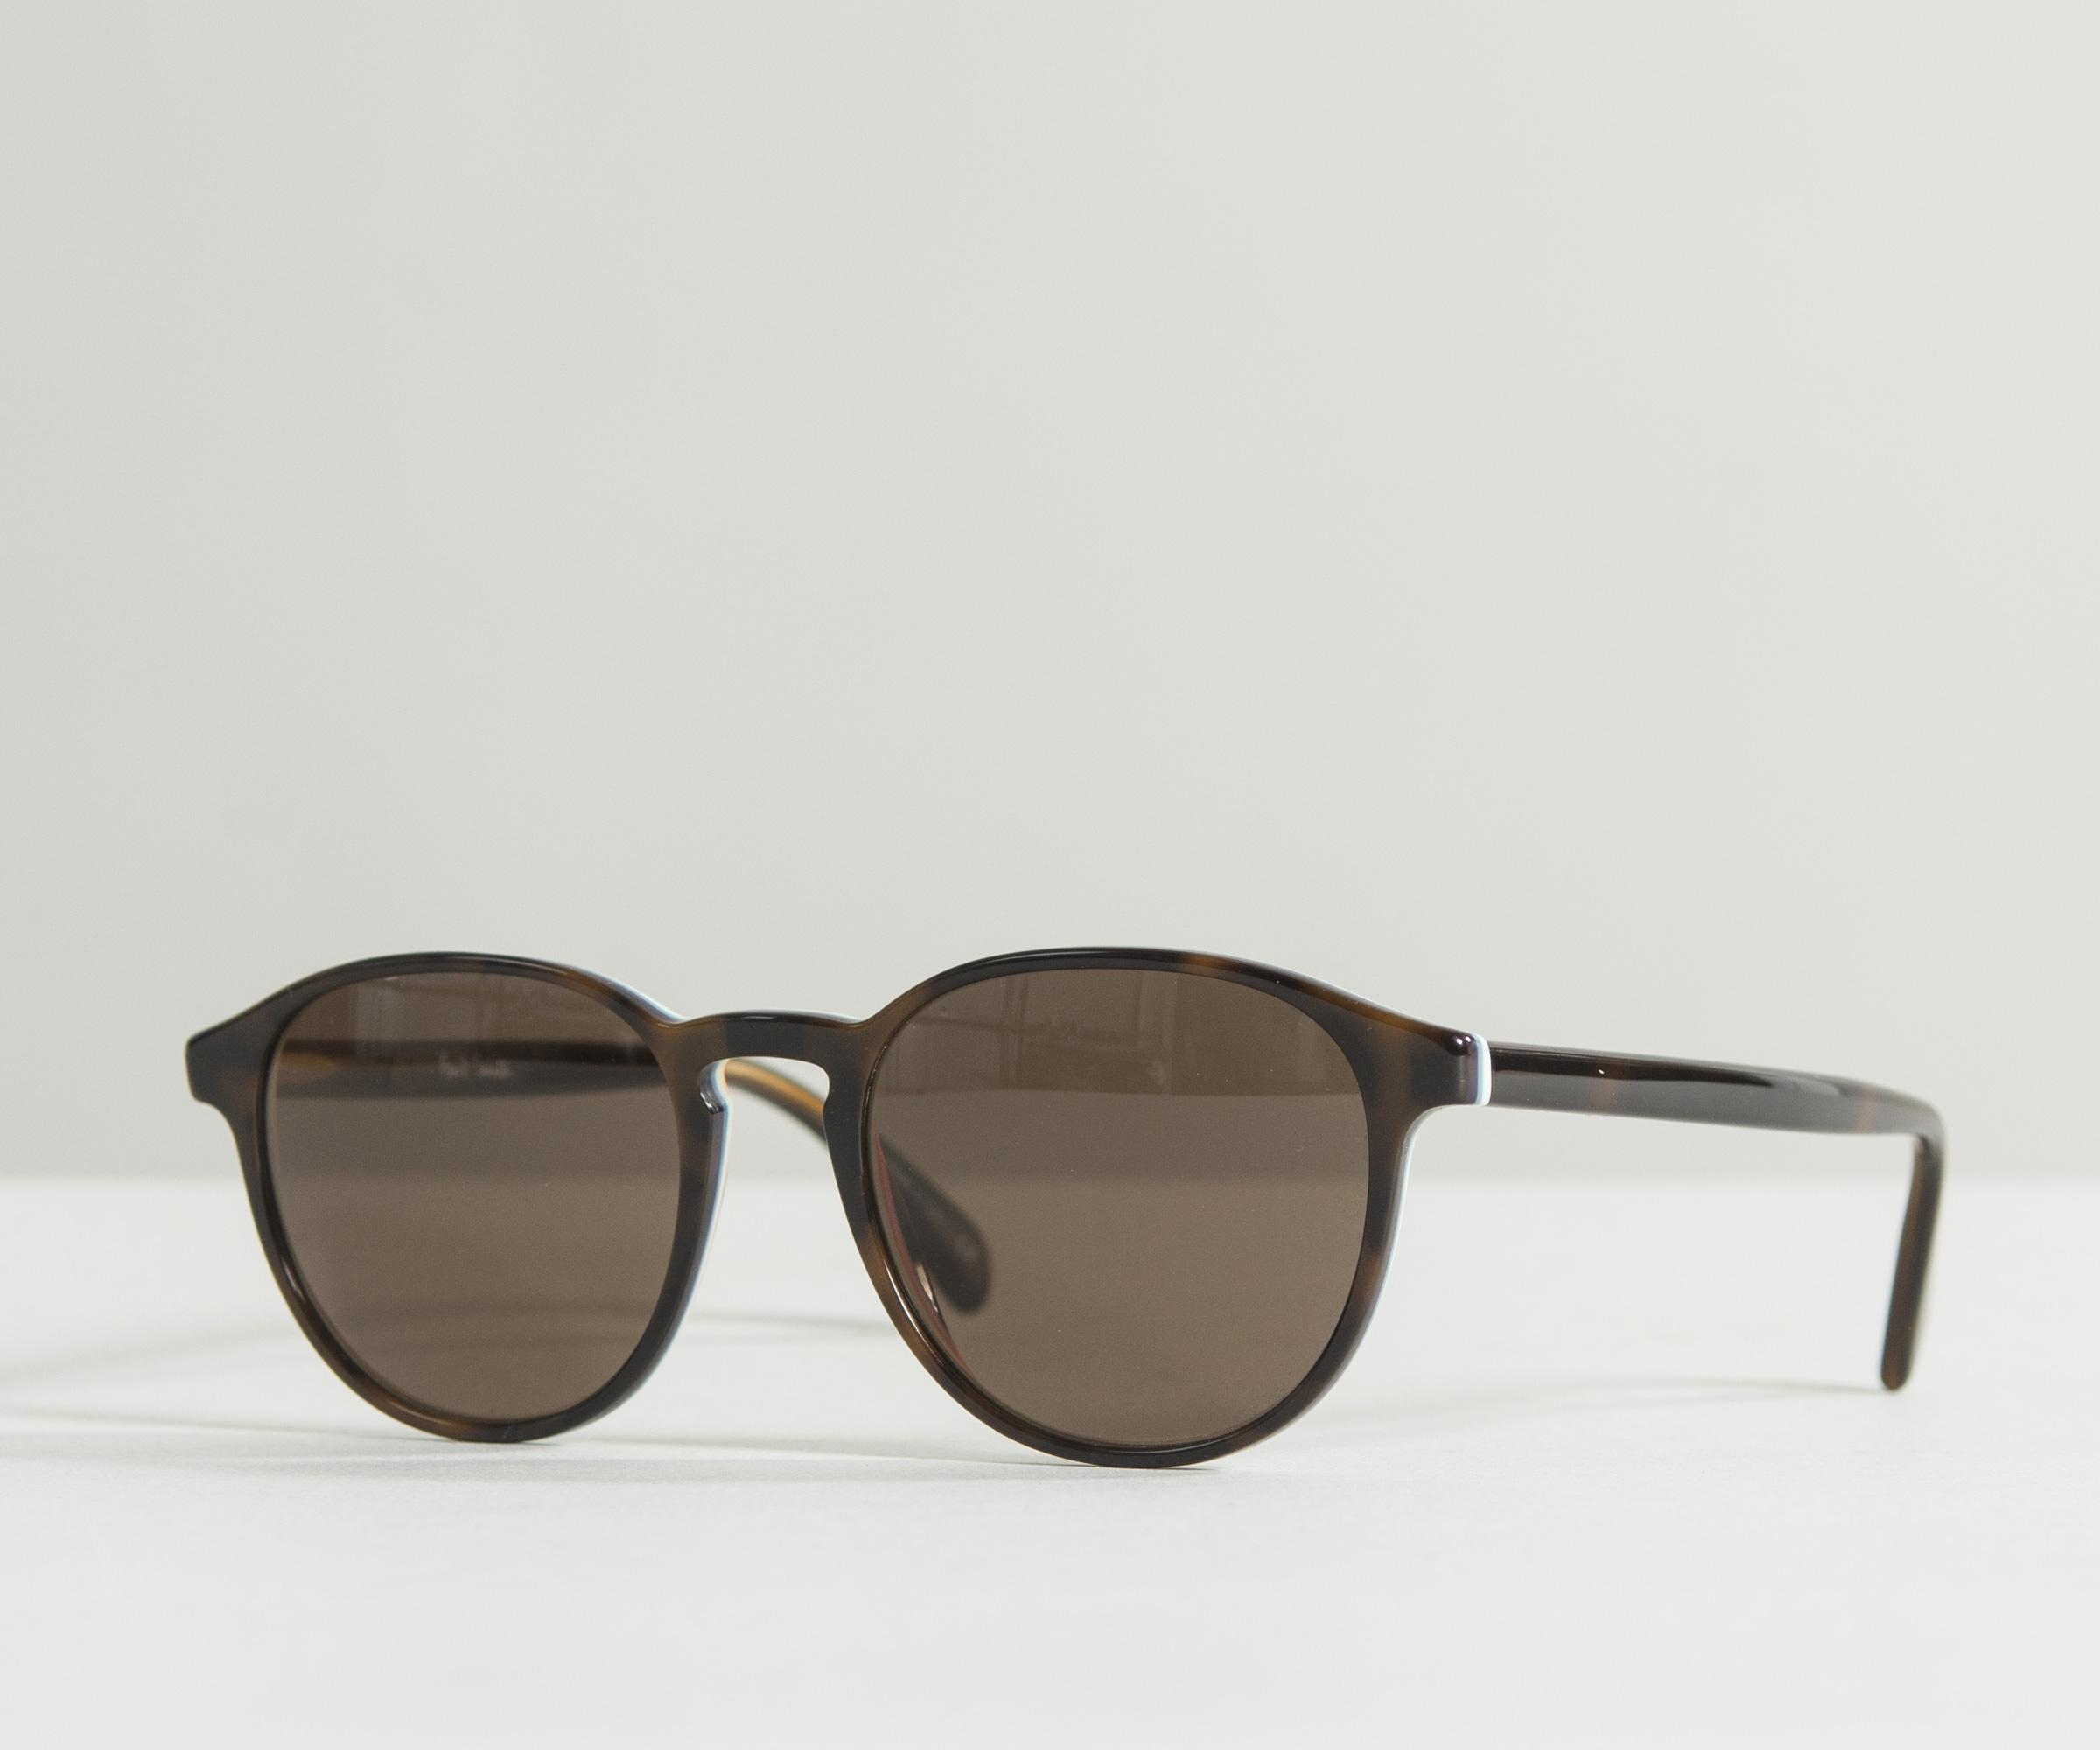 3601caa922 Paul Smith  mayall  Sunglasses Brown in Brown - Lyst